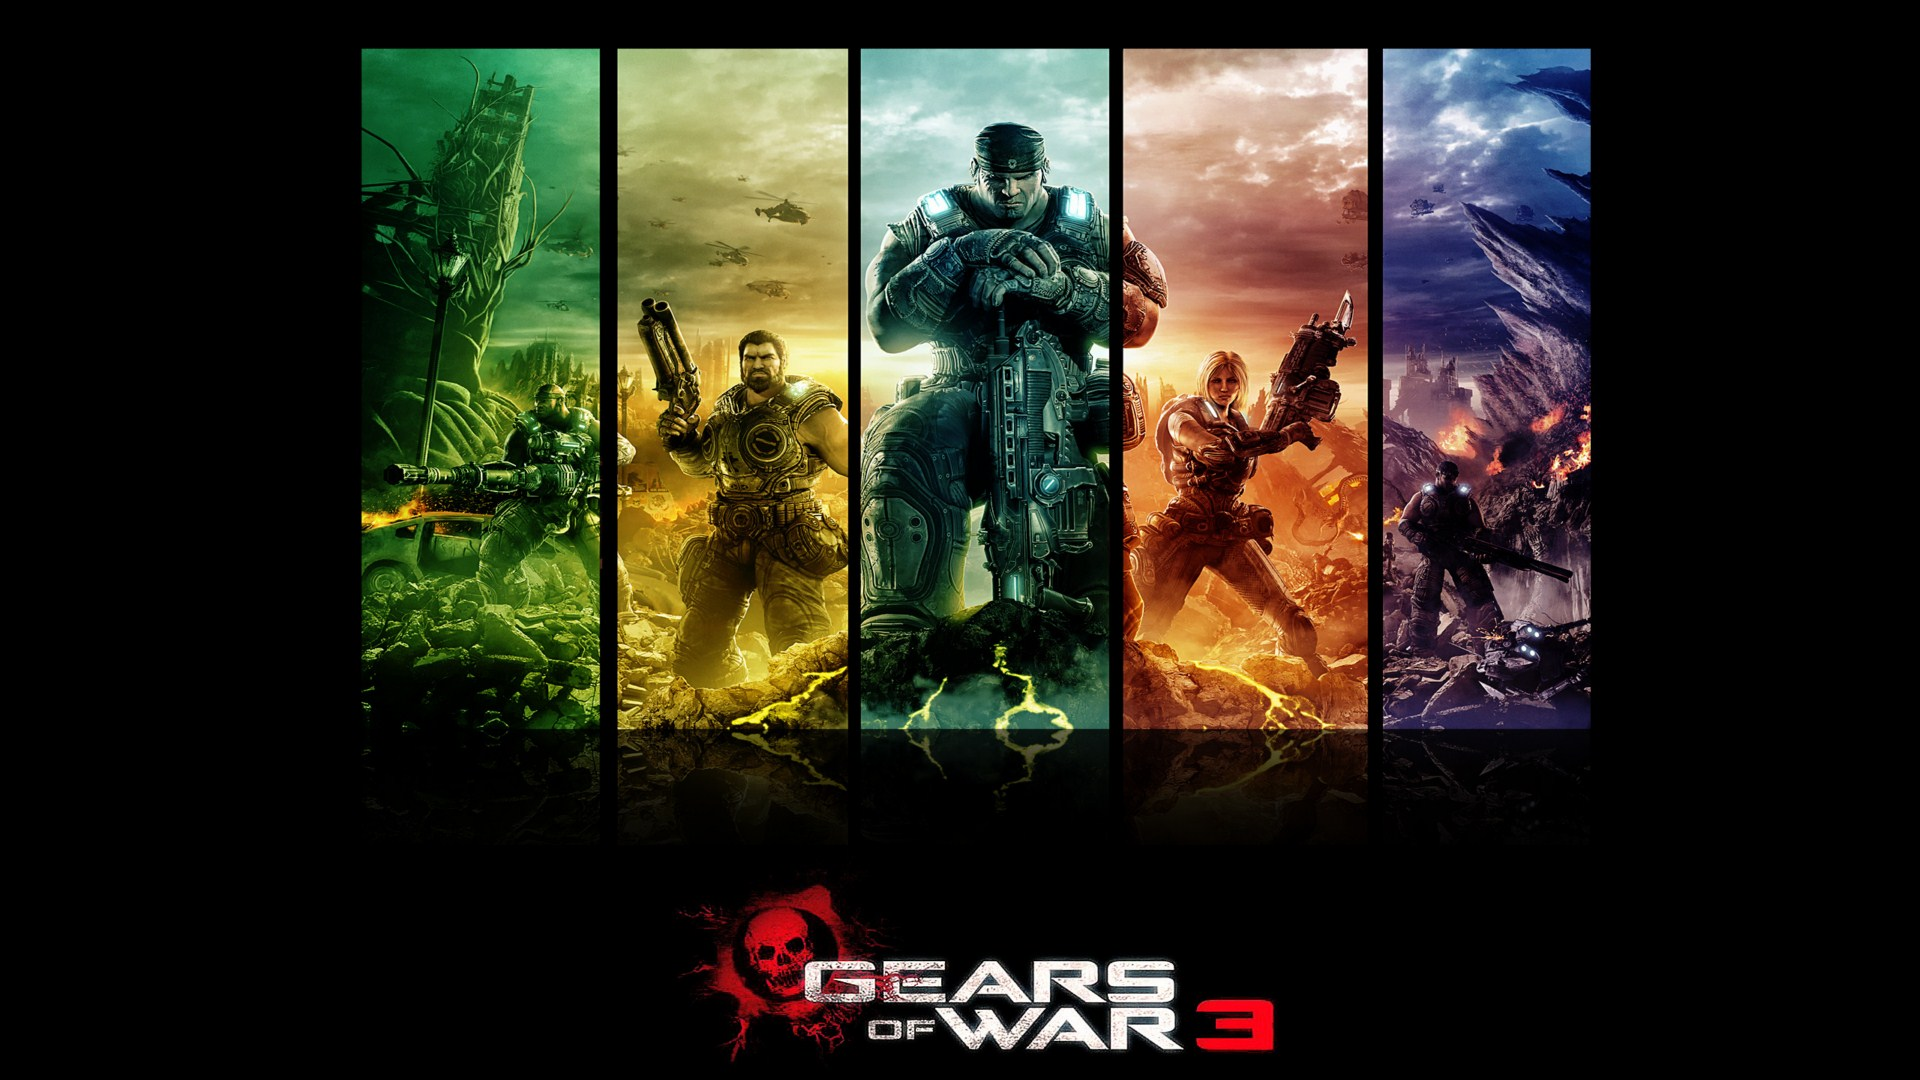 gears of war 3 full hd wallpaper and background image | 1920x1080